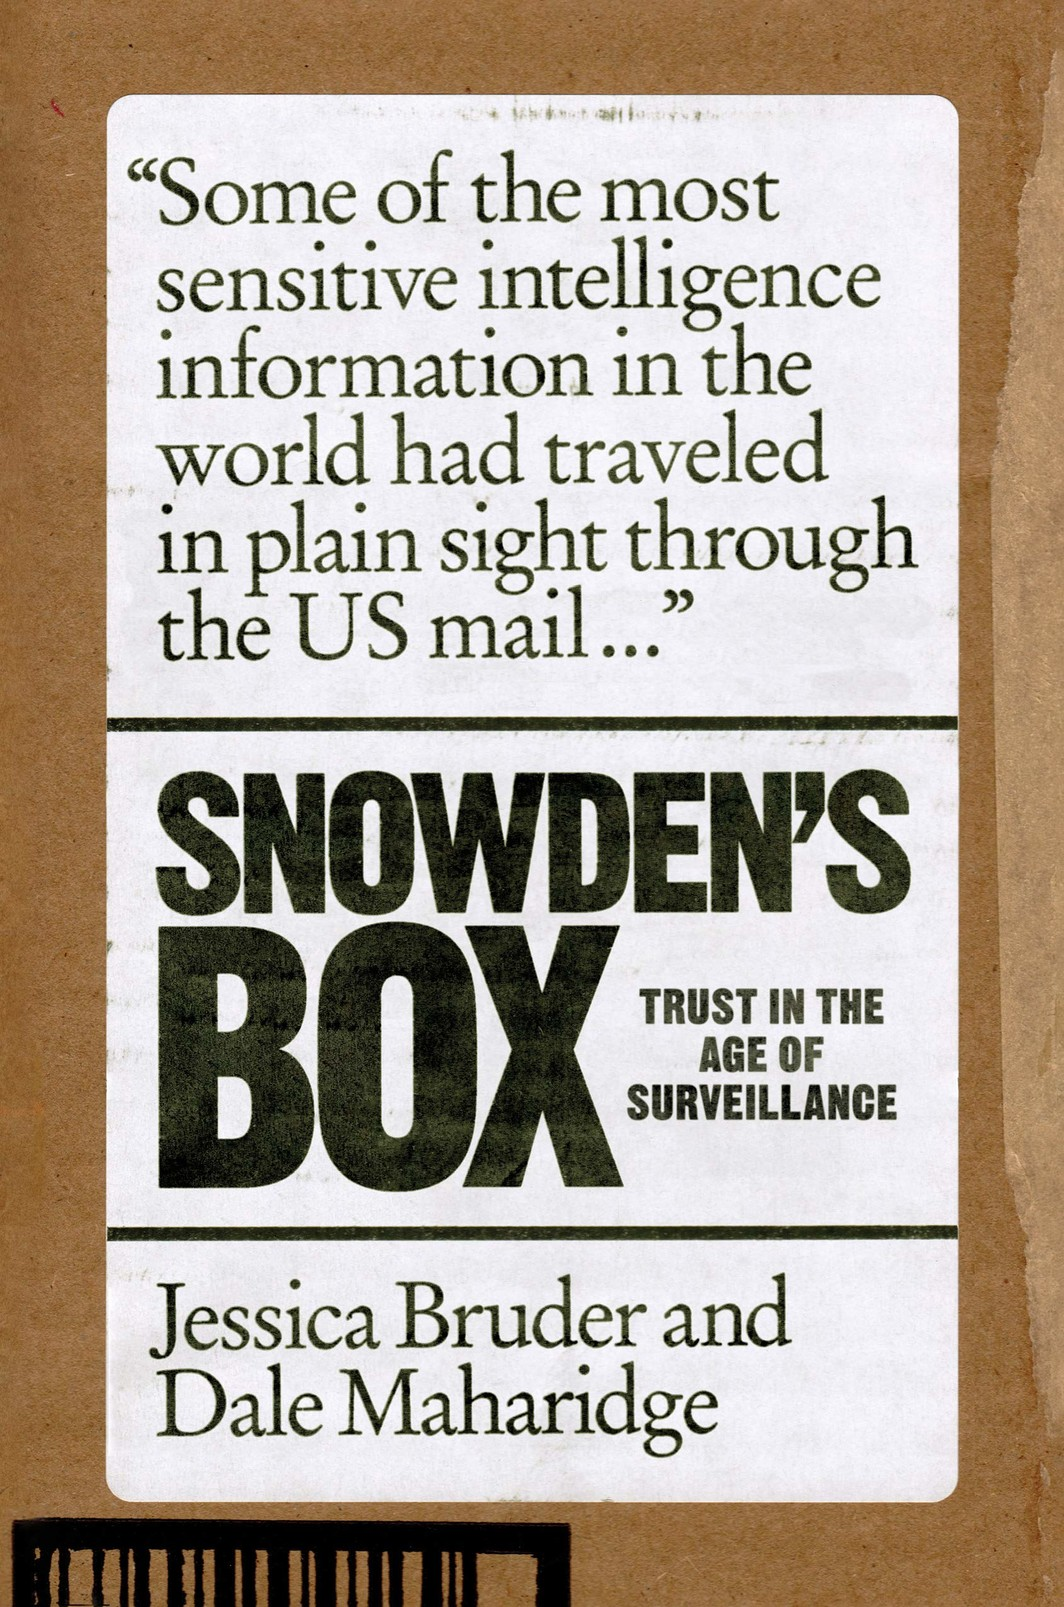 The cover of SNOWDEN'S BOX: TRUST IN THE AGE OF SURVEILLANCE